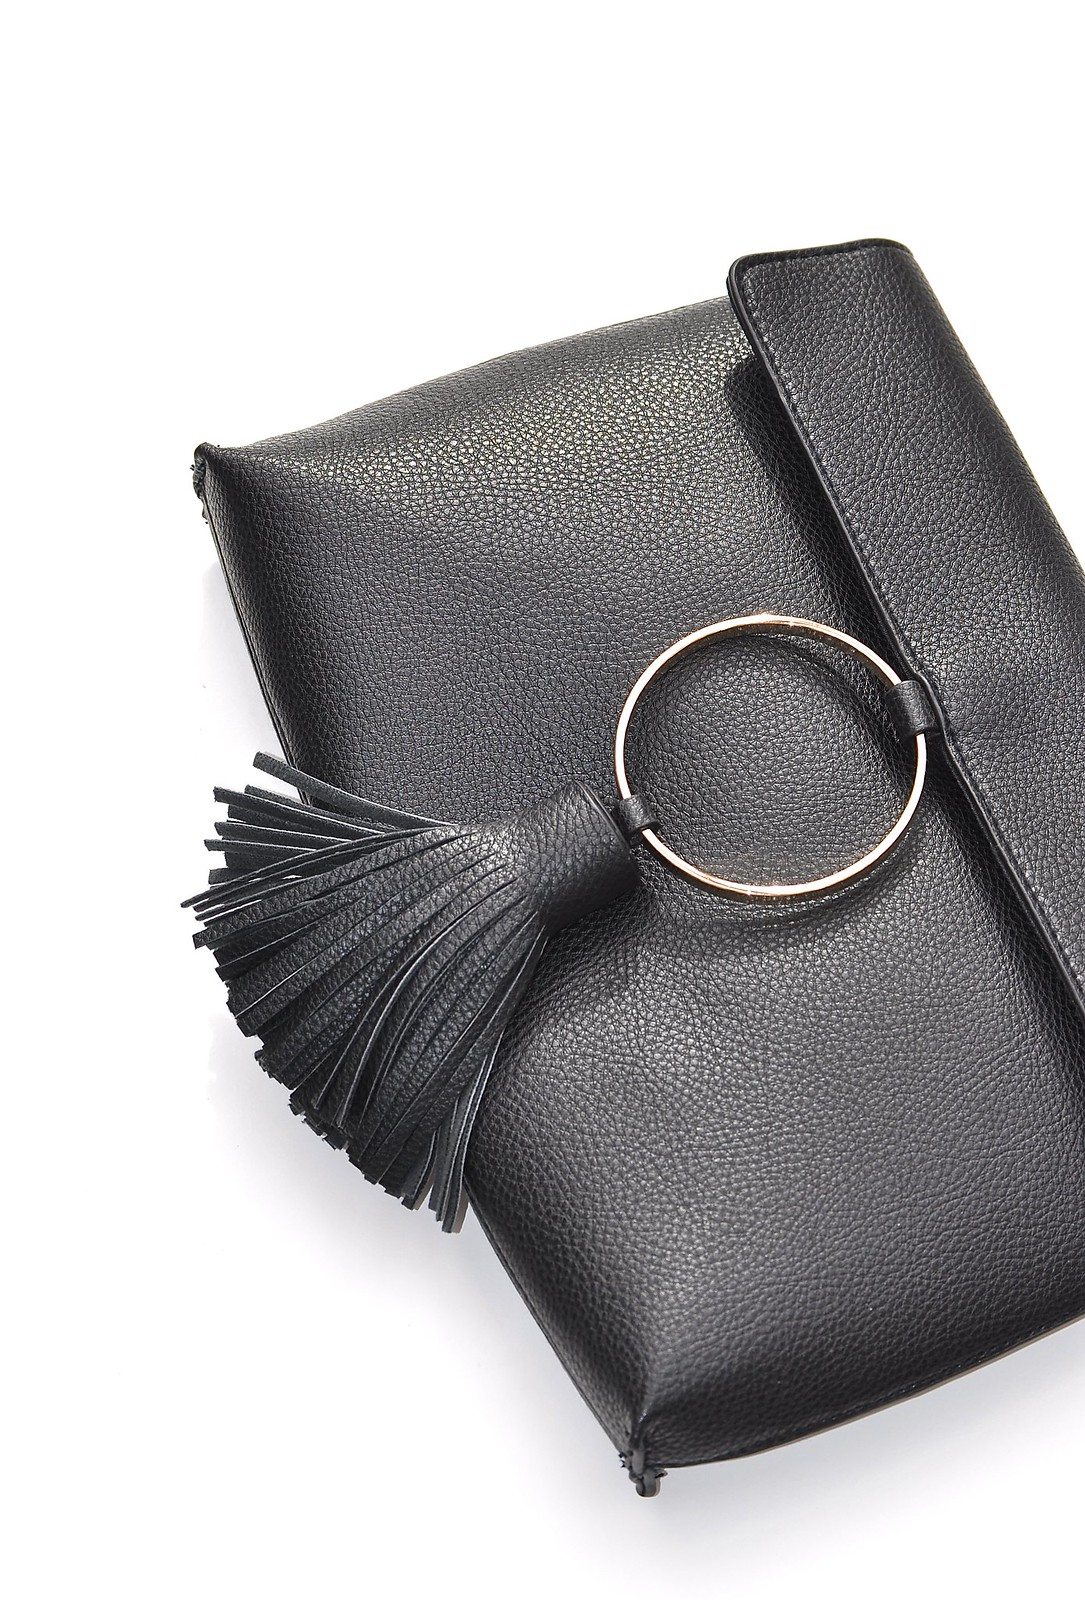 Asos Black circle clutch bag 1